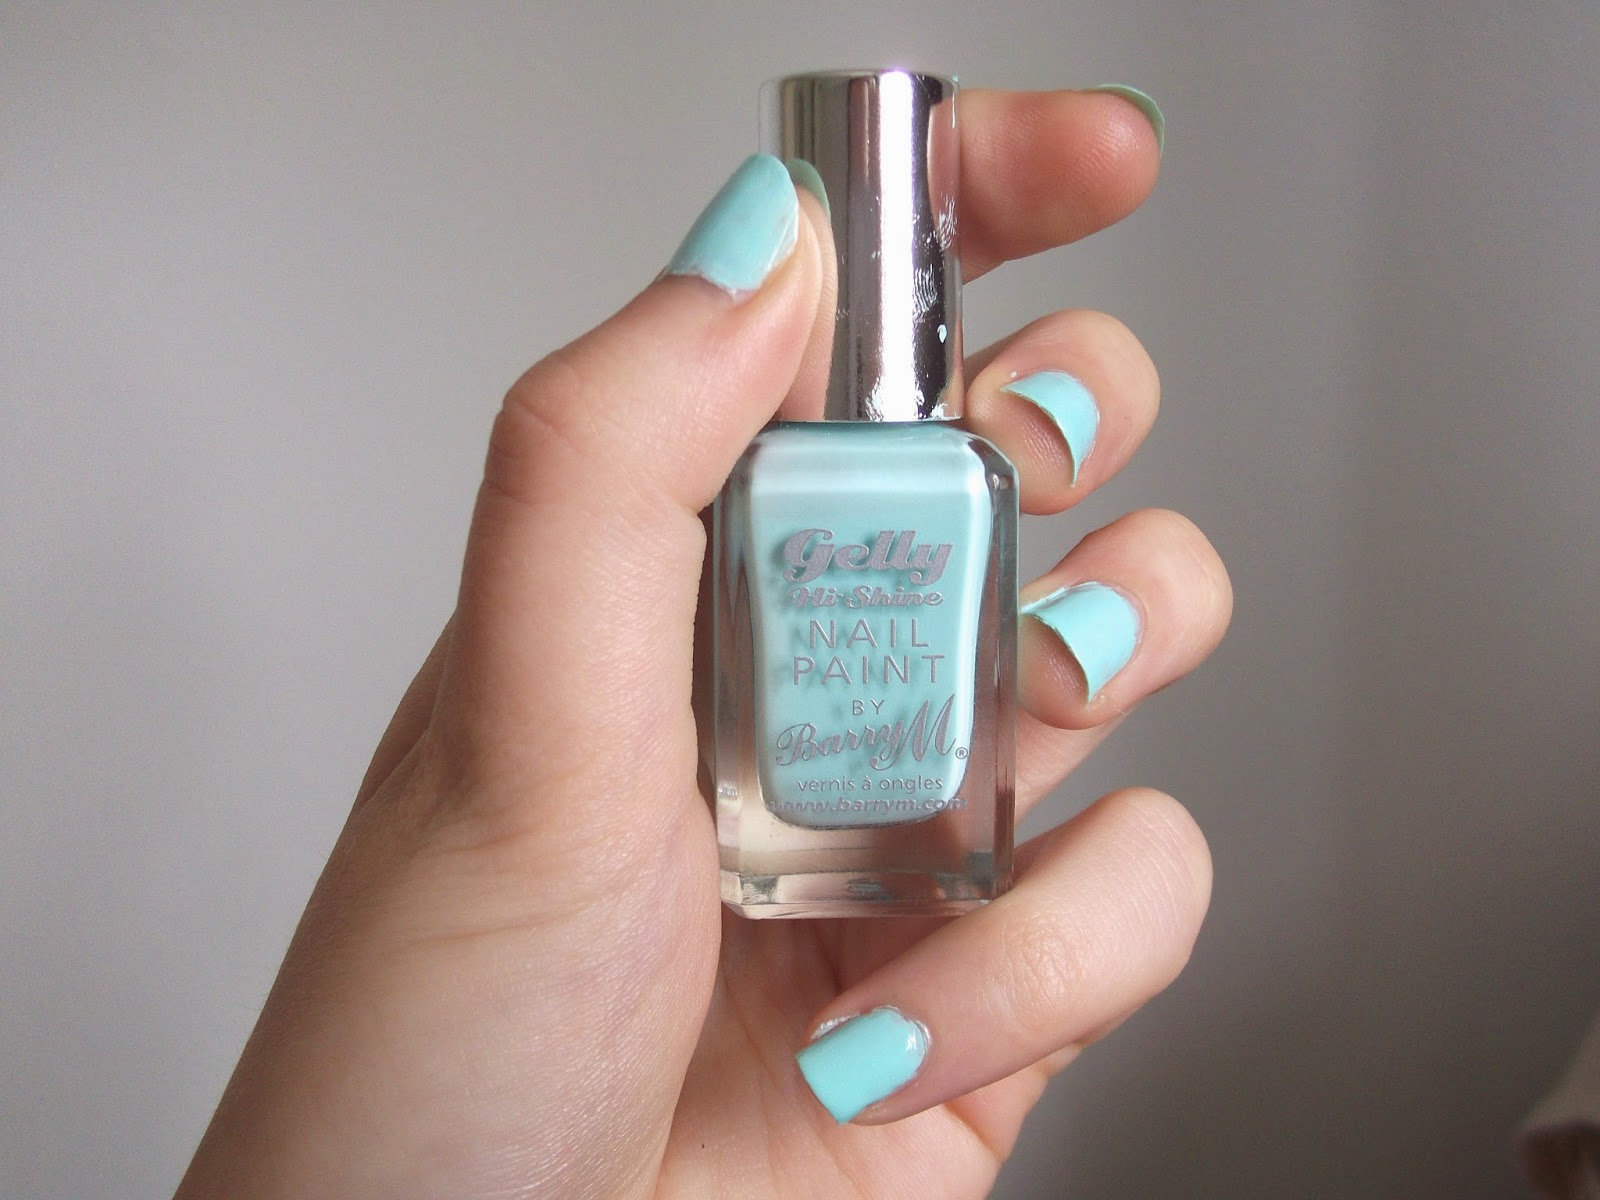 Barry M Gelly Hi- Shine Nail Paint in 'Sugar Apple'